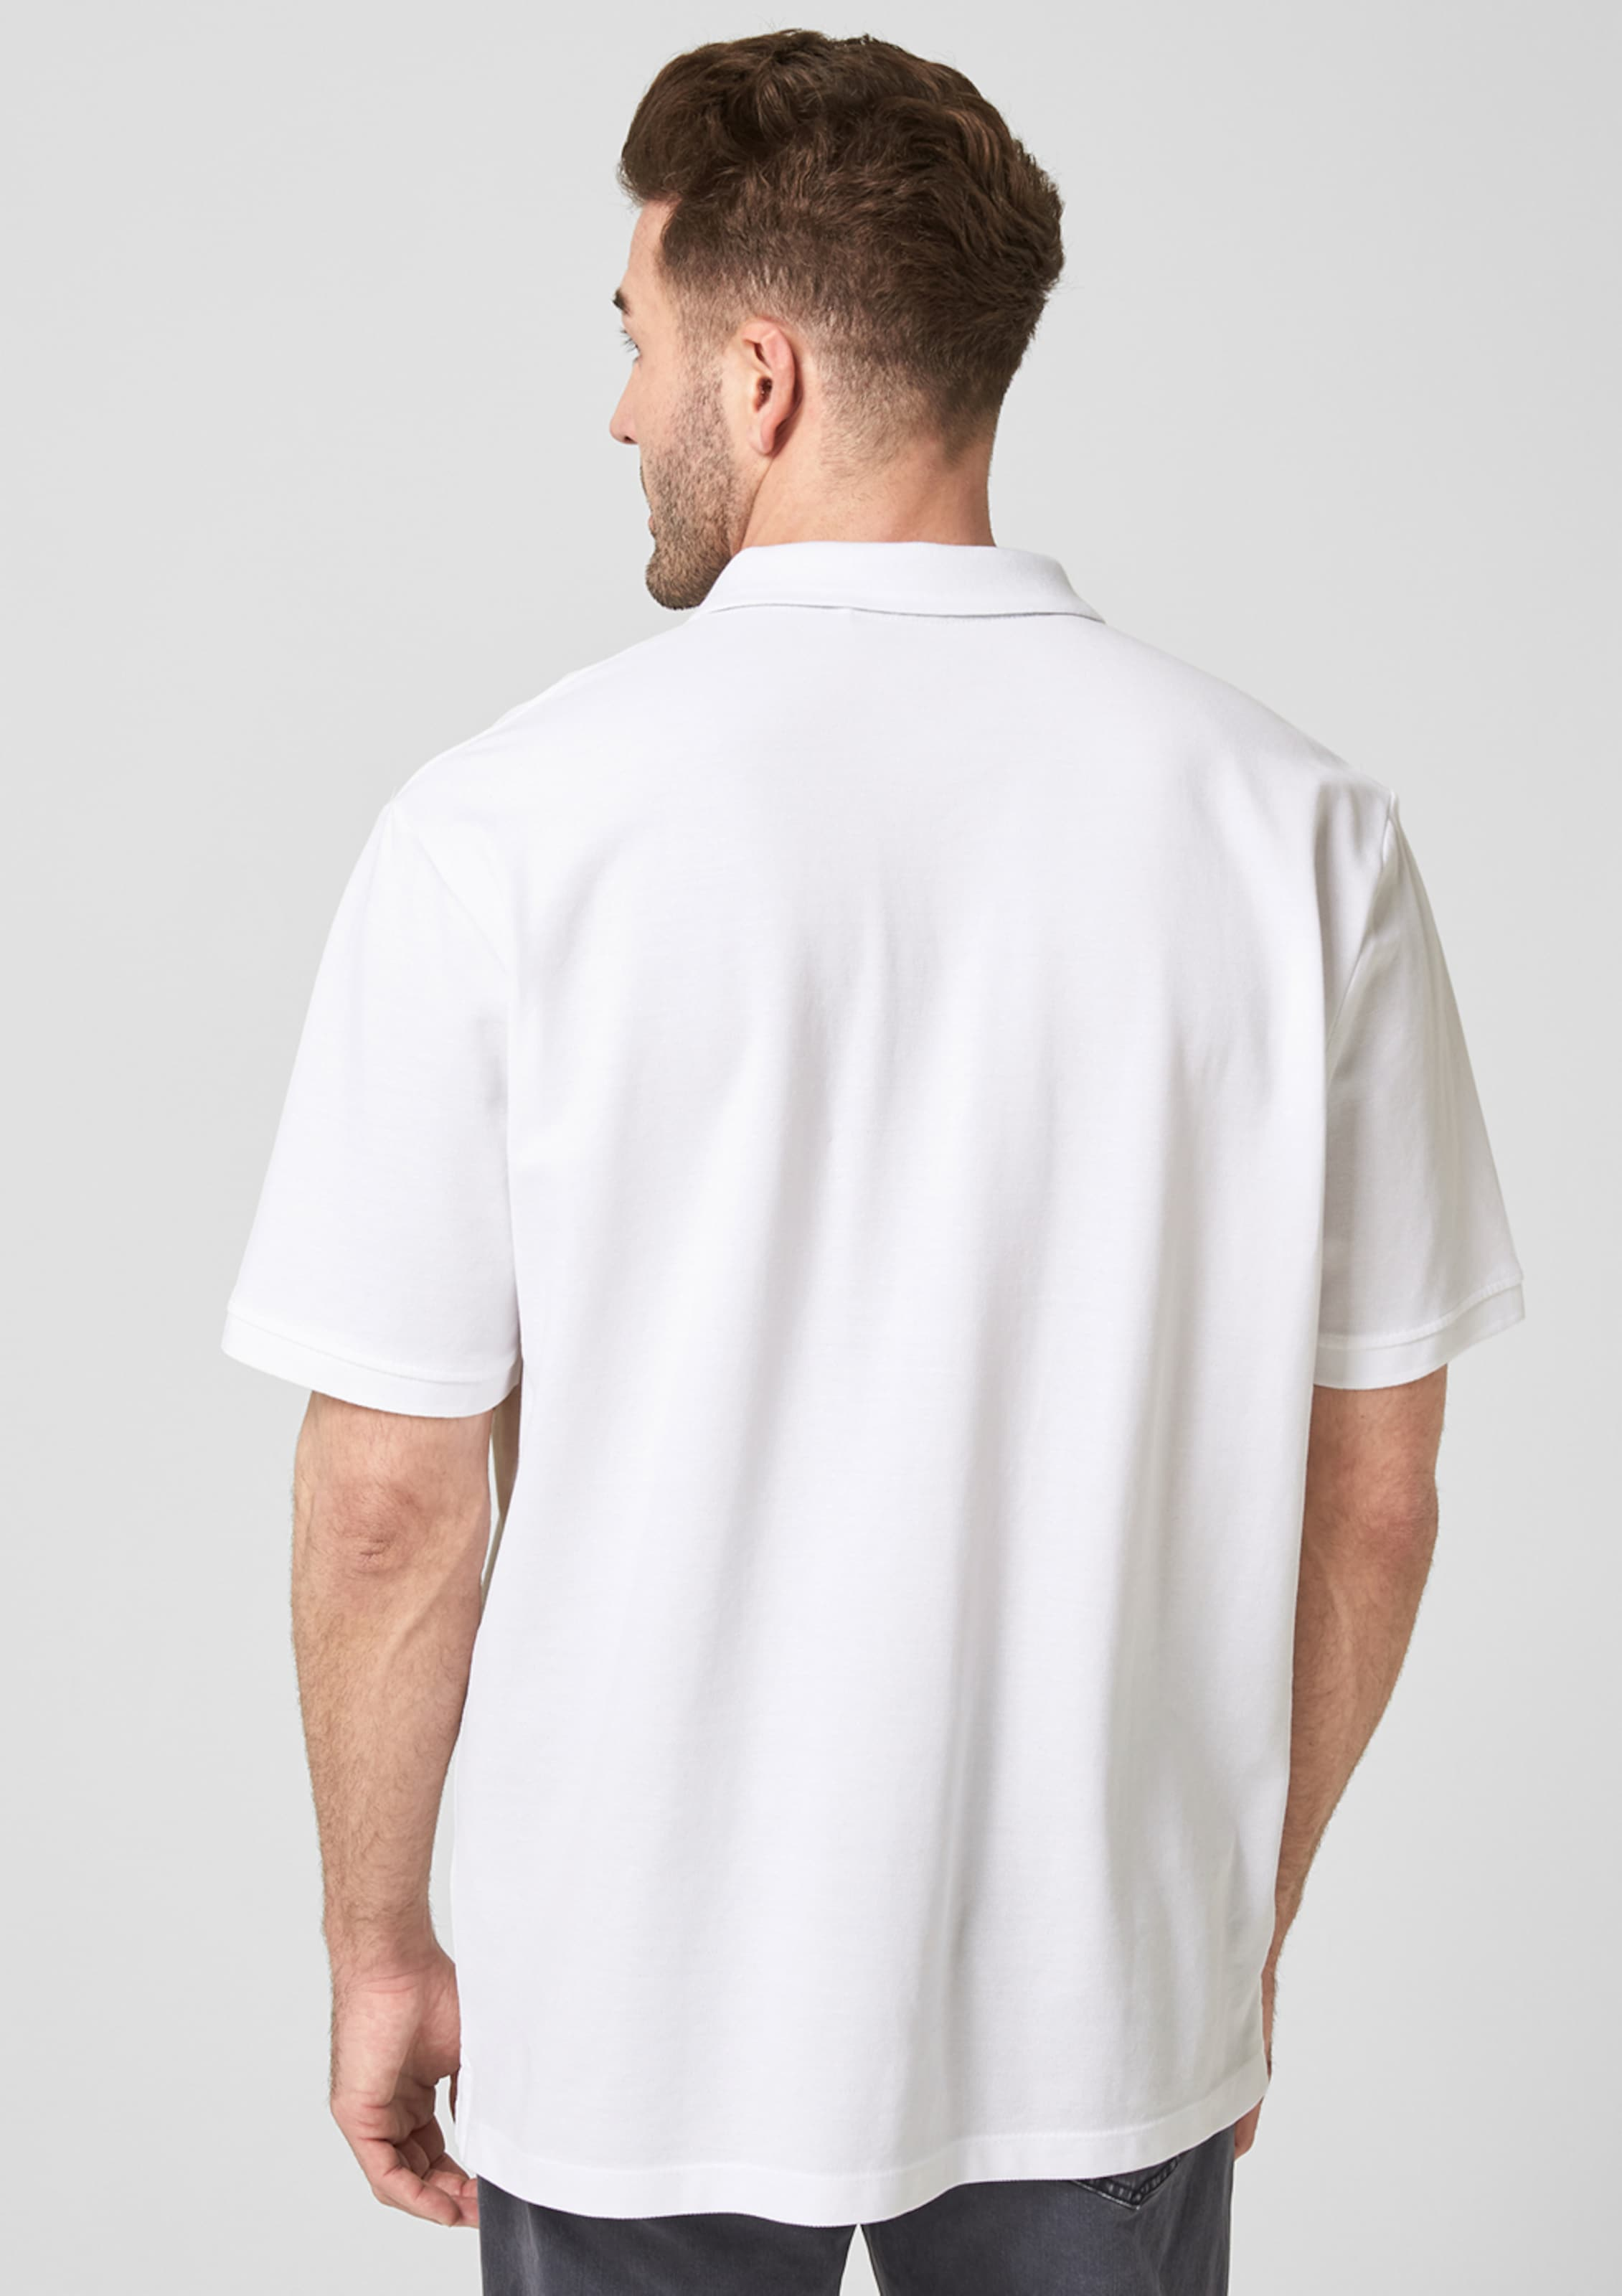 In S oliver S oliver Poloshirt Weiß ARc3q4j5L